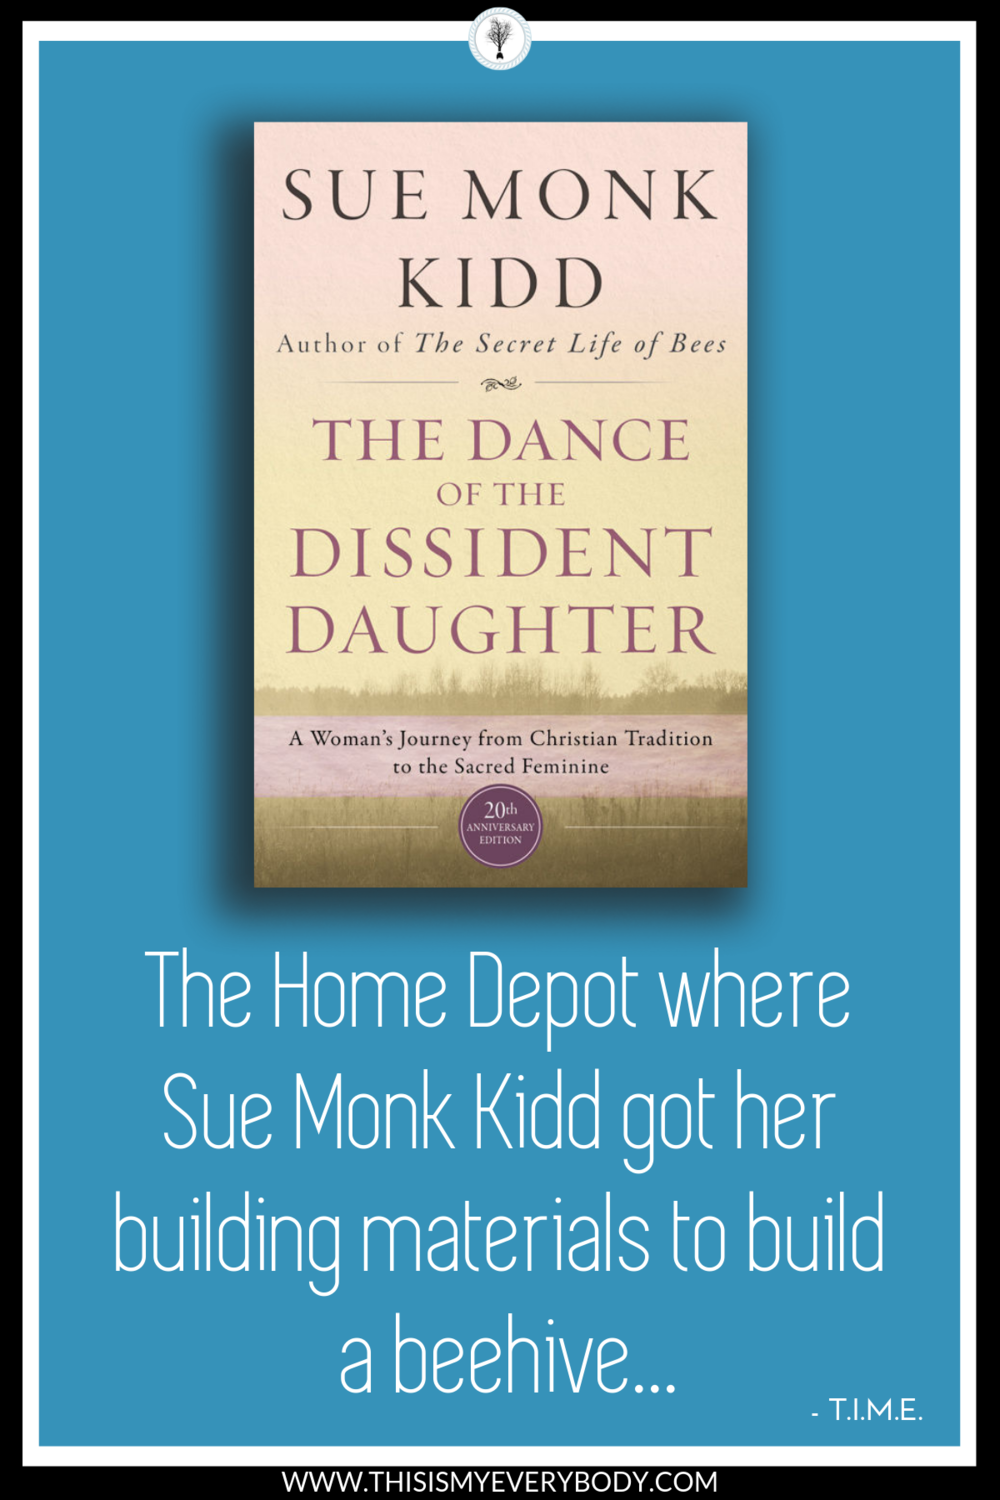 Ever hear of a little multi-million selling book named The Secret Life of Bees? Well, this is the Home Depot where Sue Monk Kidd gathered all her building materials from to build that beehive. Refresh your memory on The Secret Life of Bees… Then, take this journey. It is a treasure map… The Dance of the Dissident Daughter - A Woman's Journey from Christian Tradition to the Sacred Feminine by Sue Monk Kidd